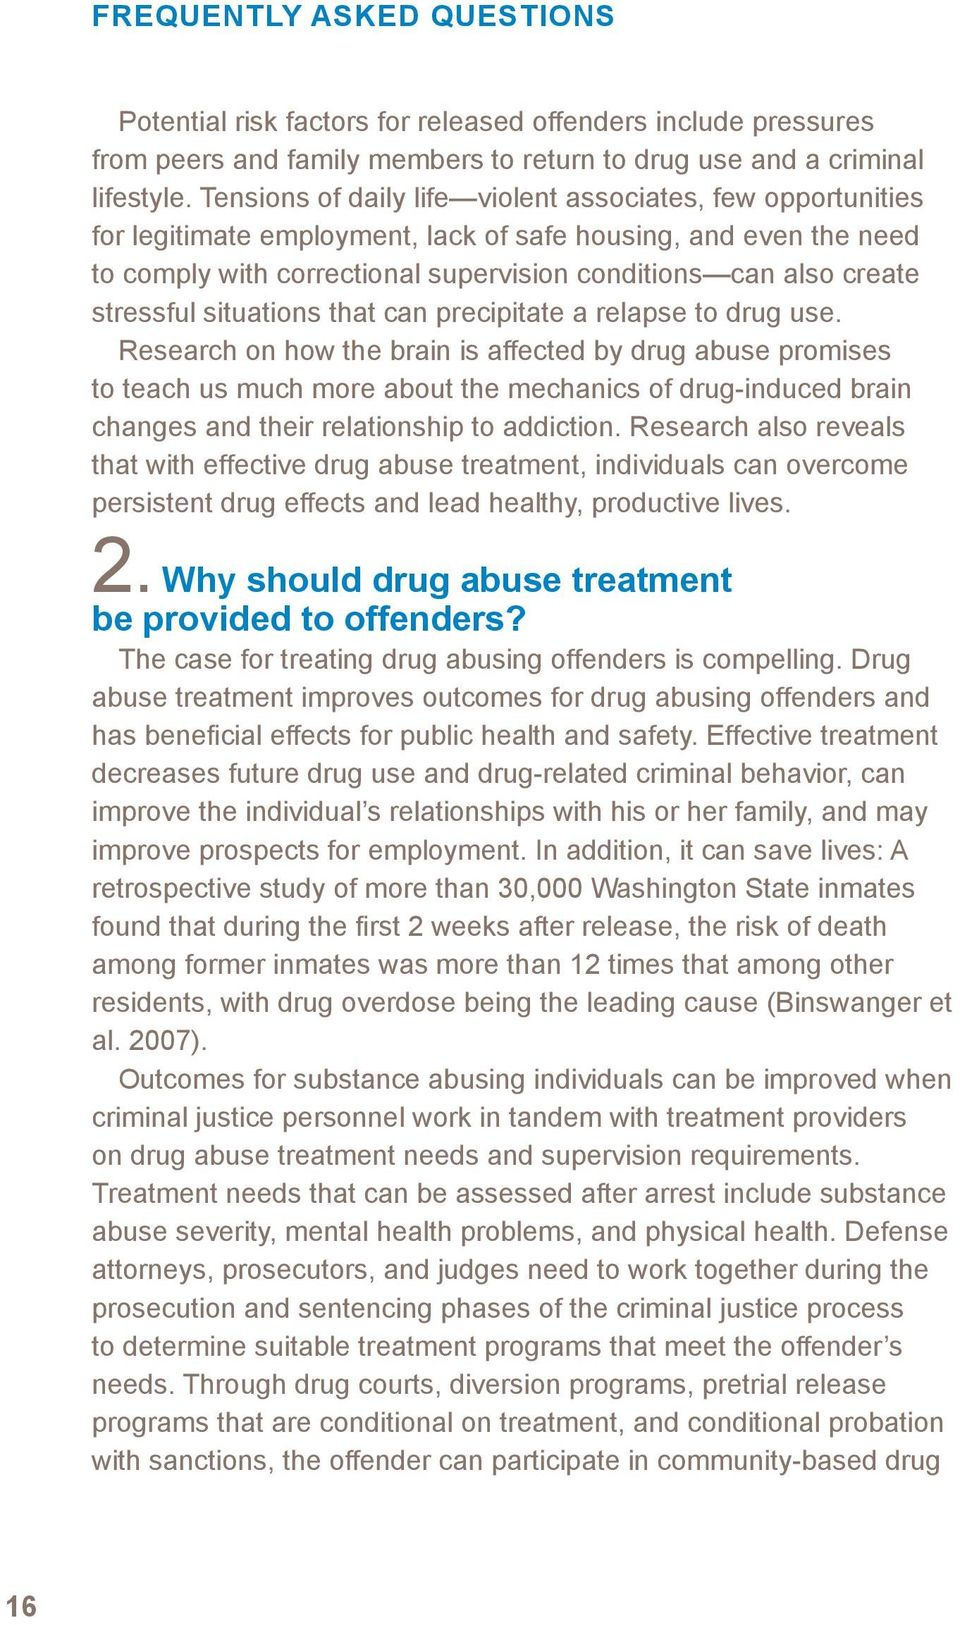 stressful situations that can precipitate a relapse to drug use.